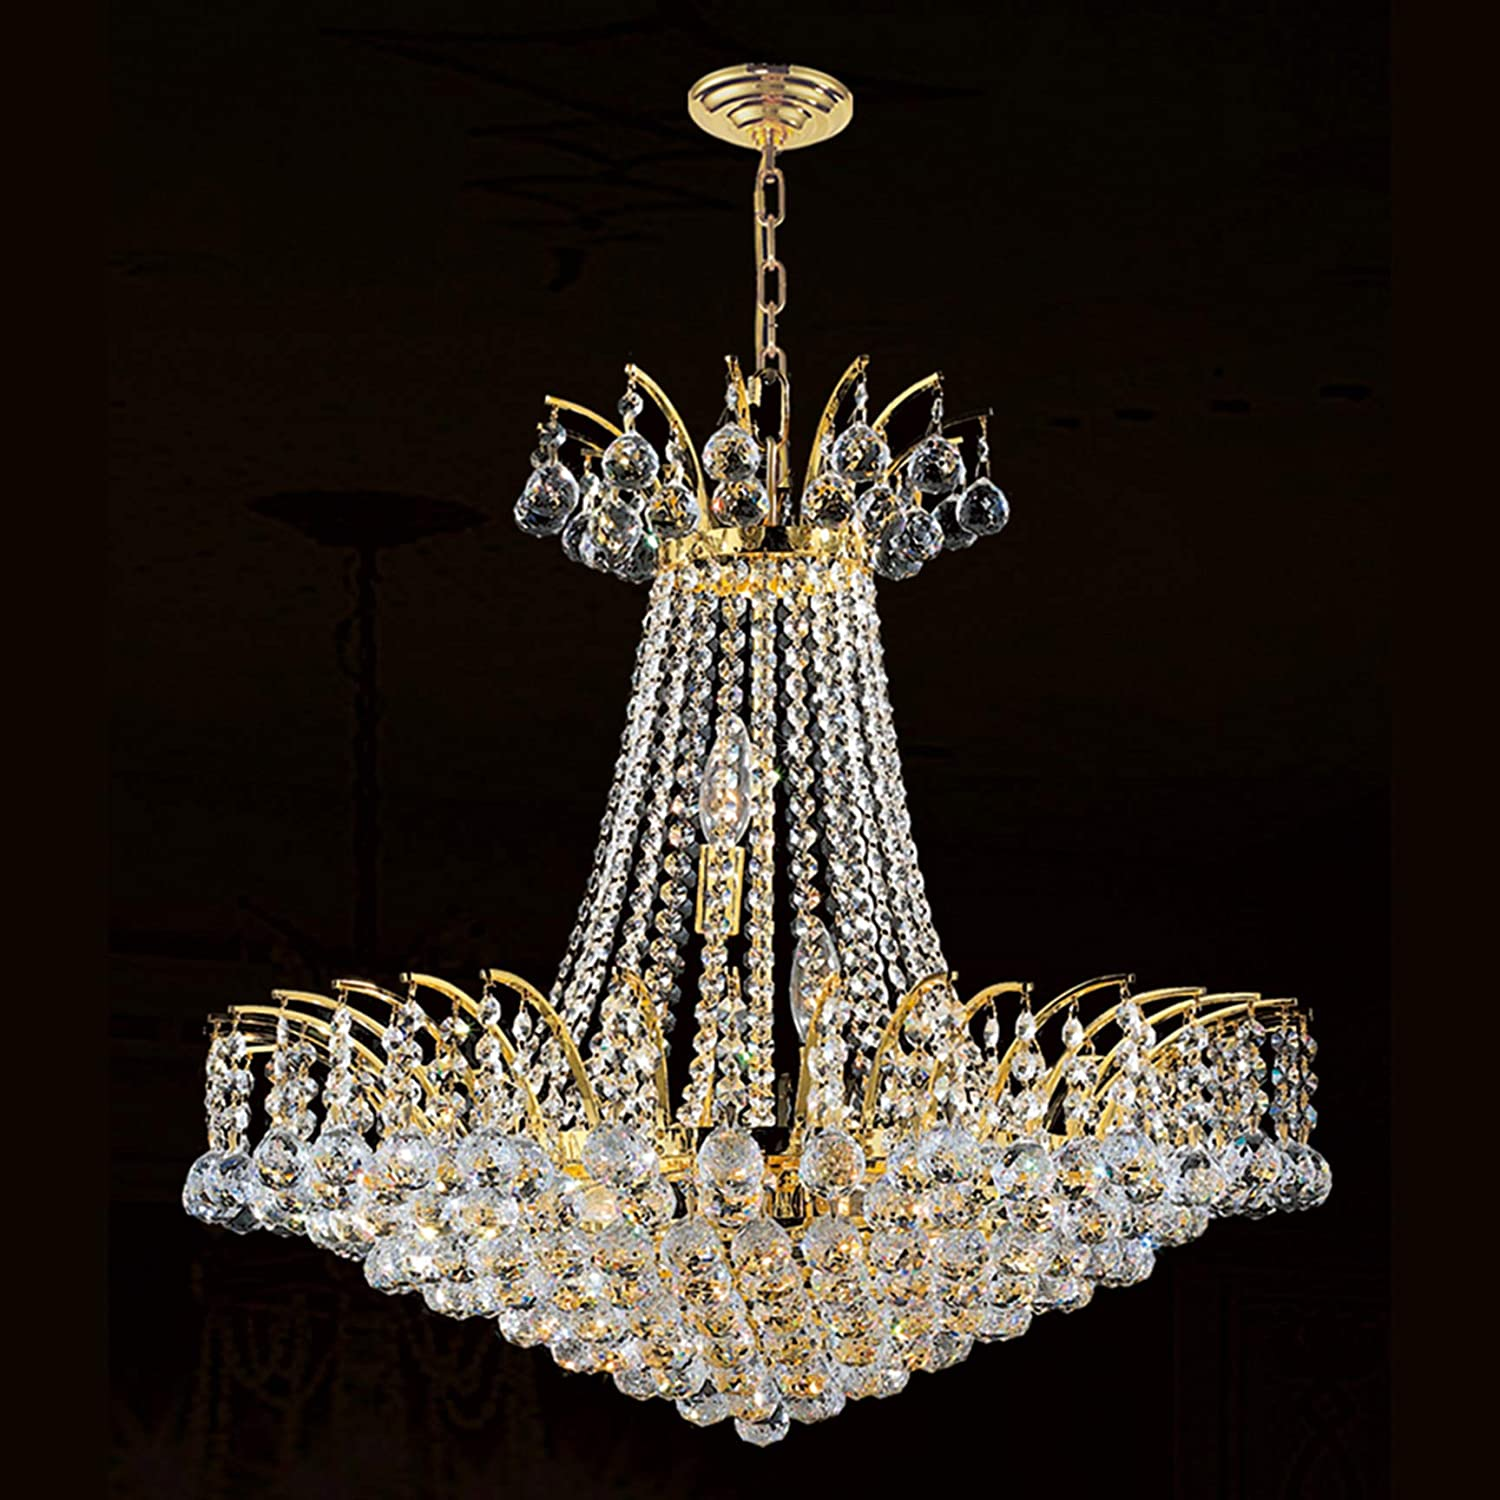 Empire 24 Light Gold Finish and Clear Crystal Chandelier 30 in. D x 40 in. H Round Large